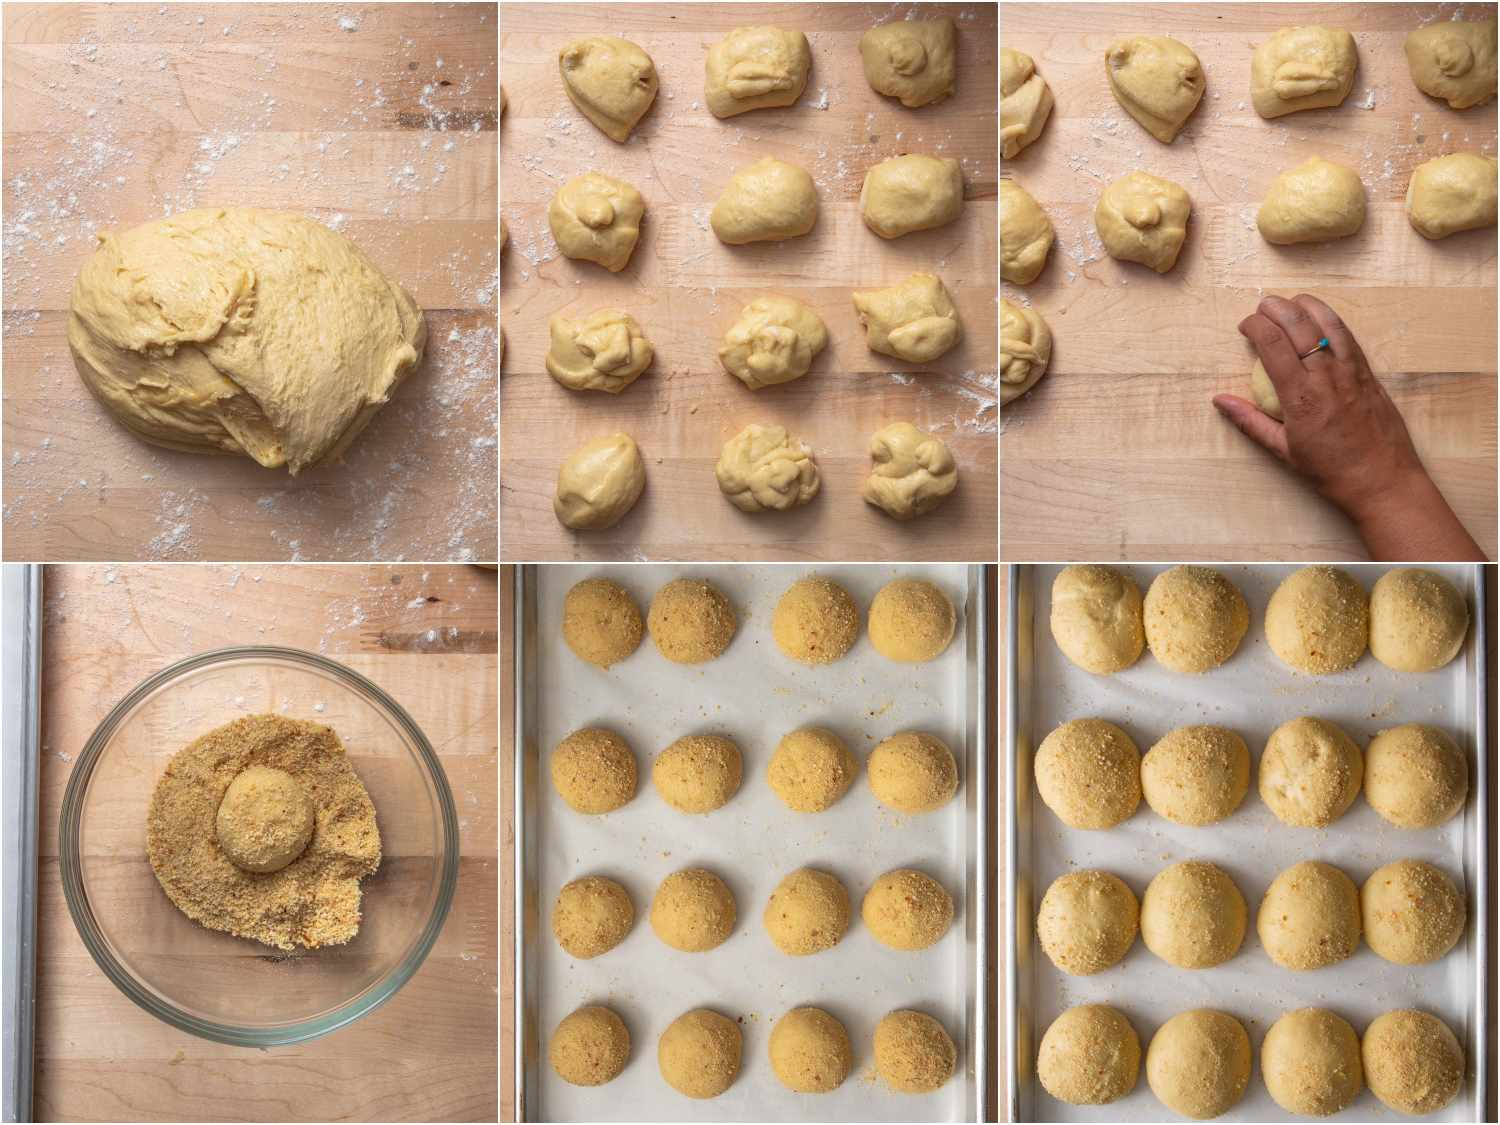 collage: pandesal dough on a floured work surface; dough divided into 16 portions; a hand cupping and rolling dough into a smooth ball; a ball being coated in breadcrumb mixture; a tray of pandesal before resting; a tray of pandesal after resting and doubling in size